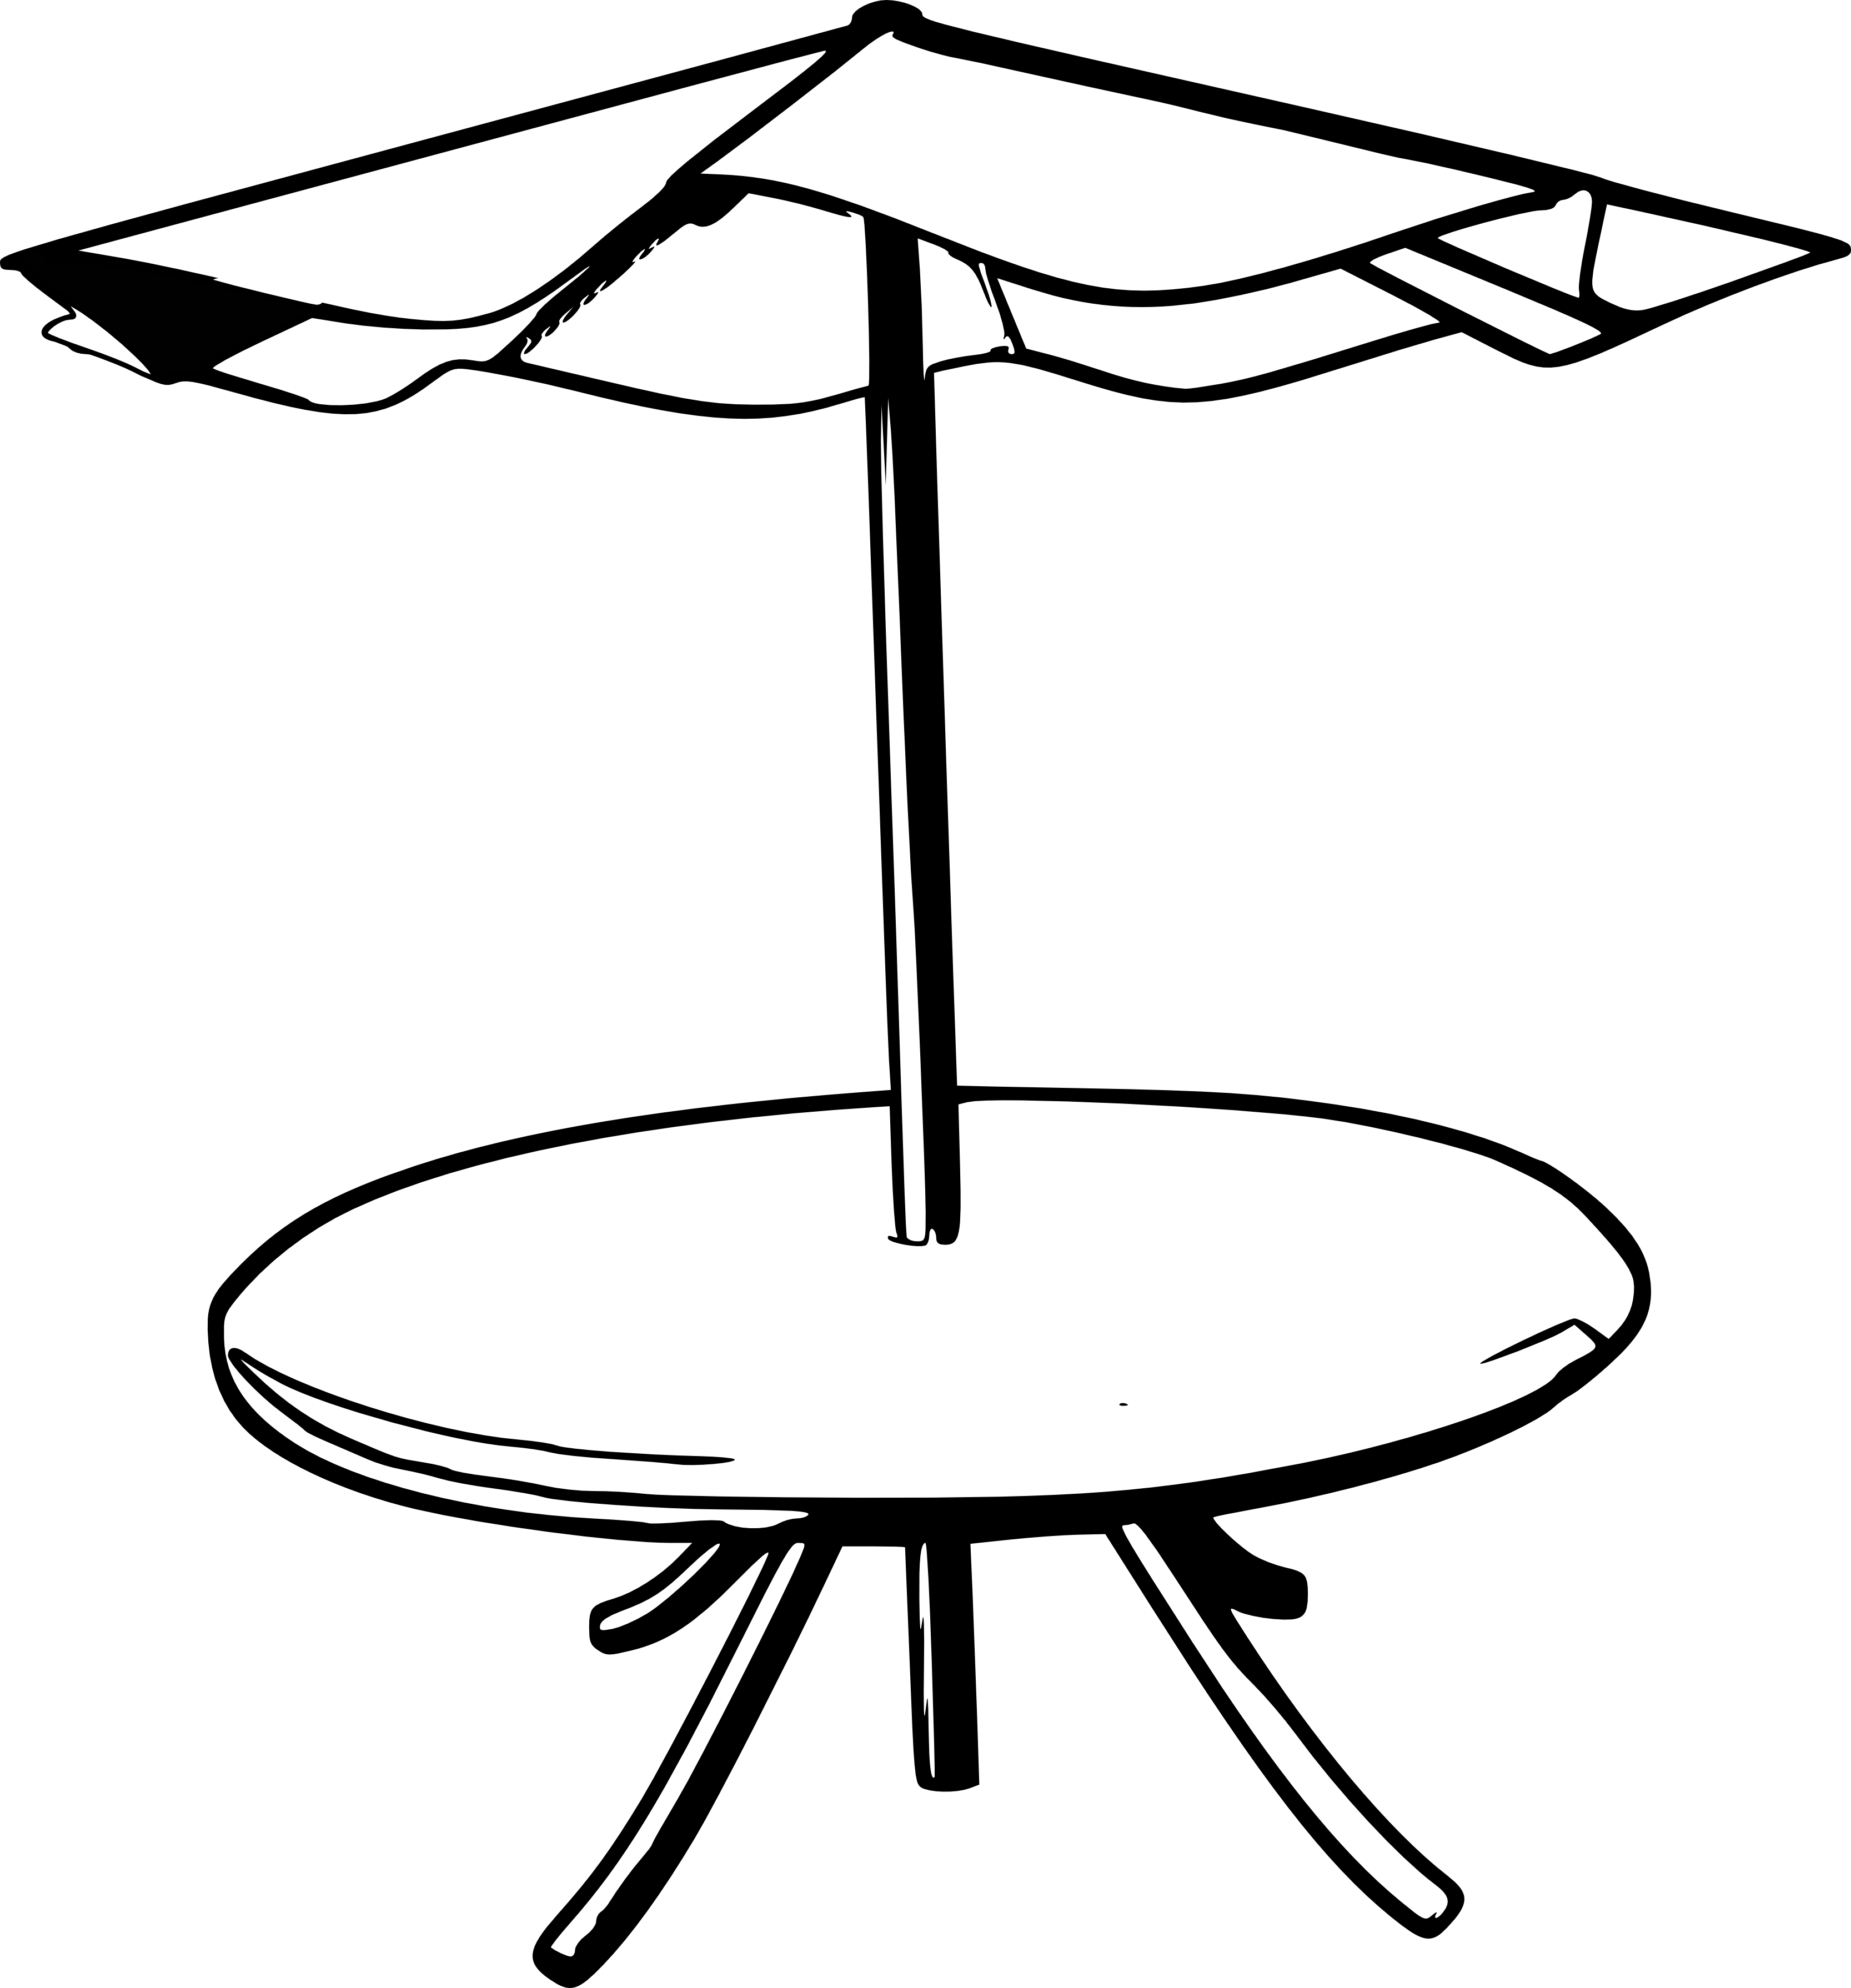 Line Art Table : Table line drawing clipart best